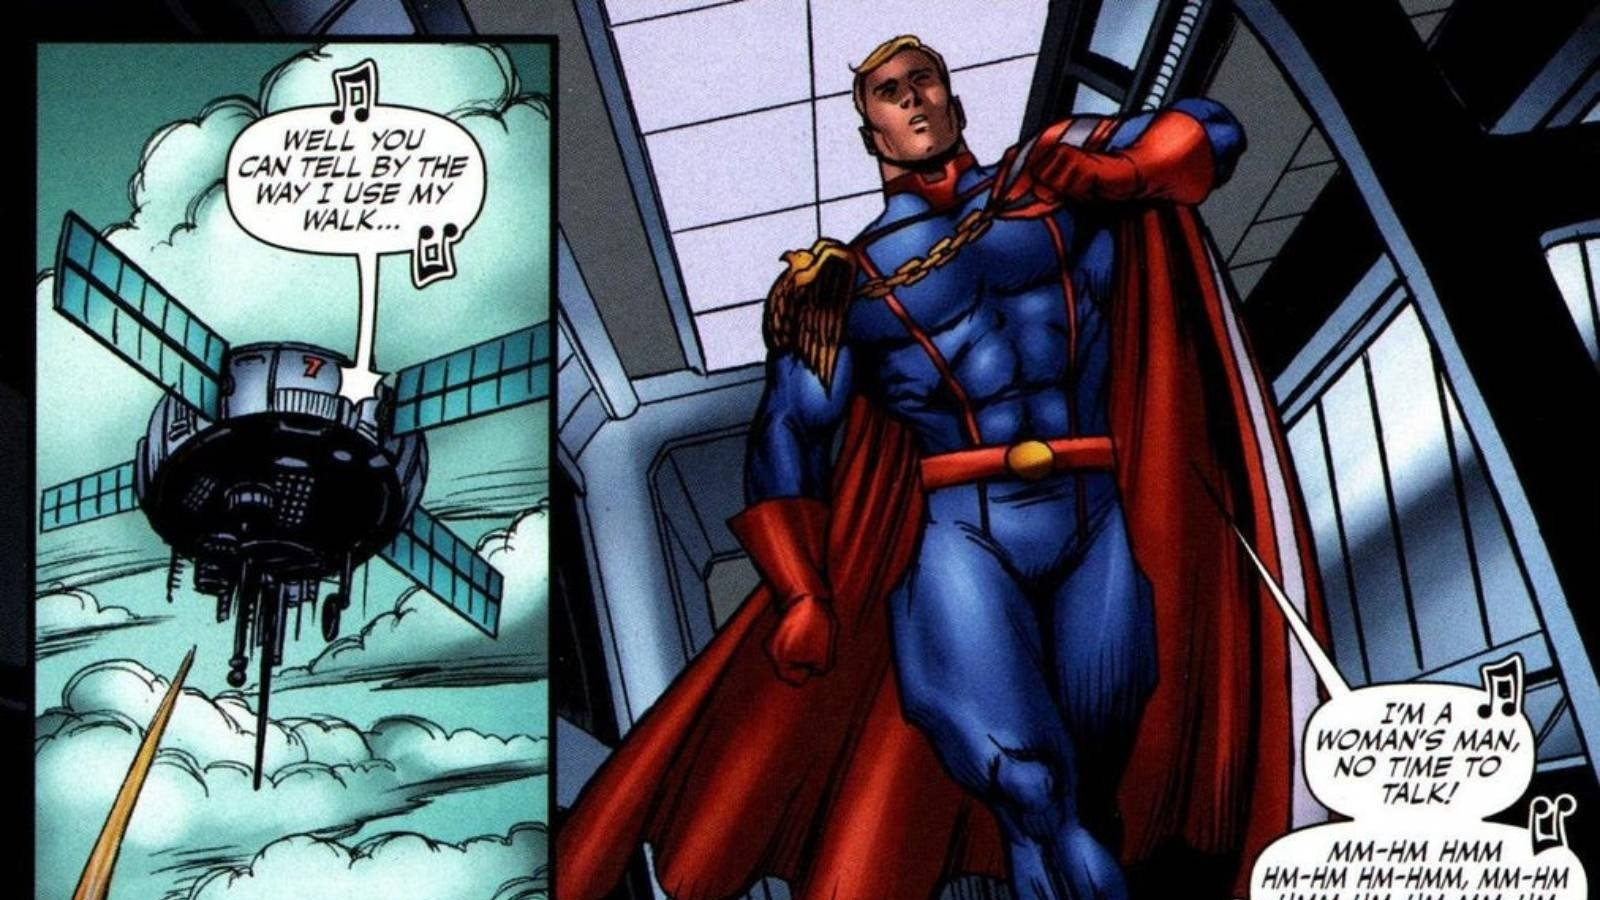 The Homelander Comics Moment Fans Want To See In The Boys TV Show